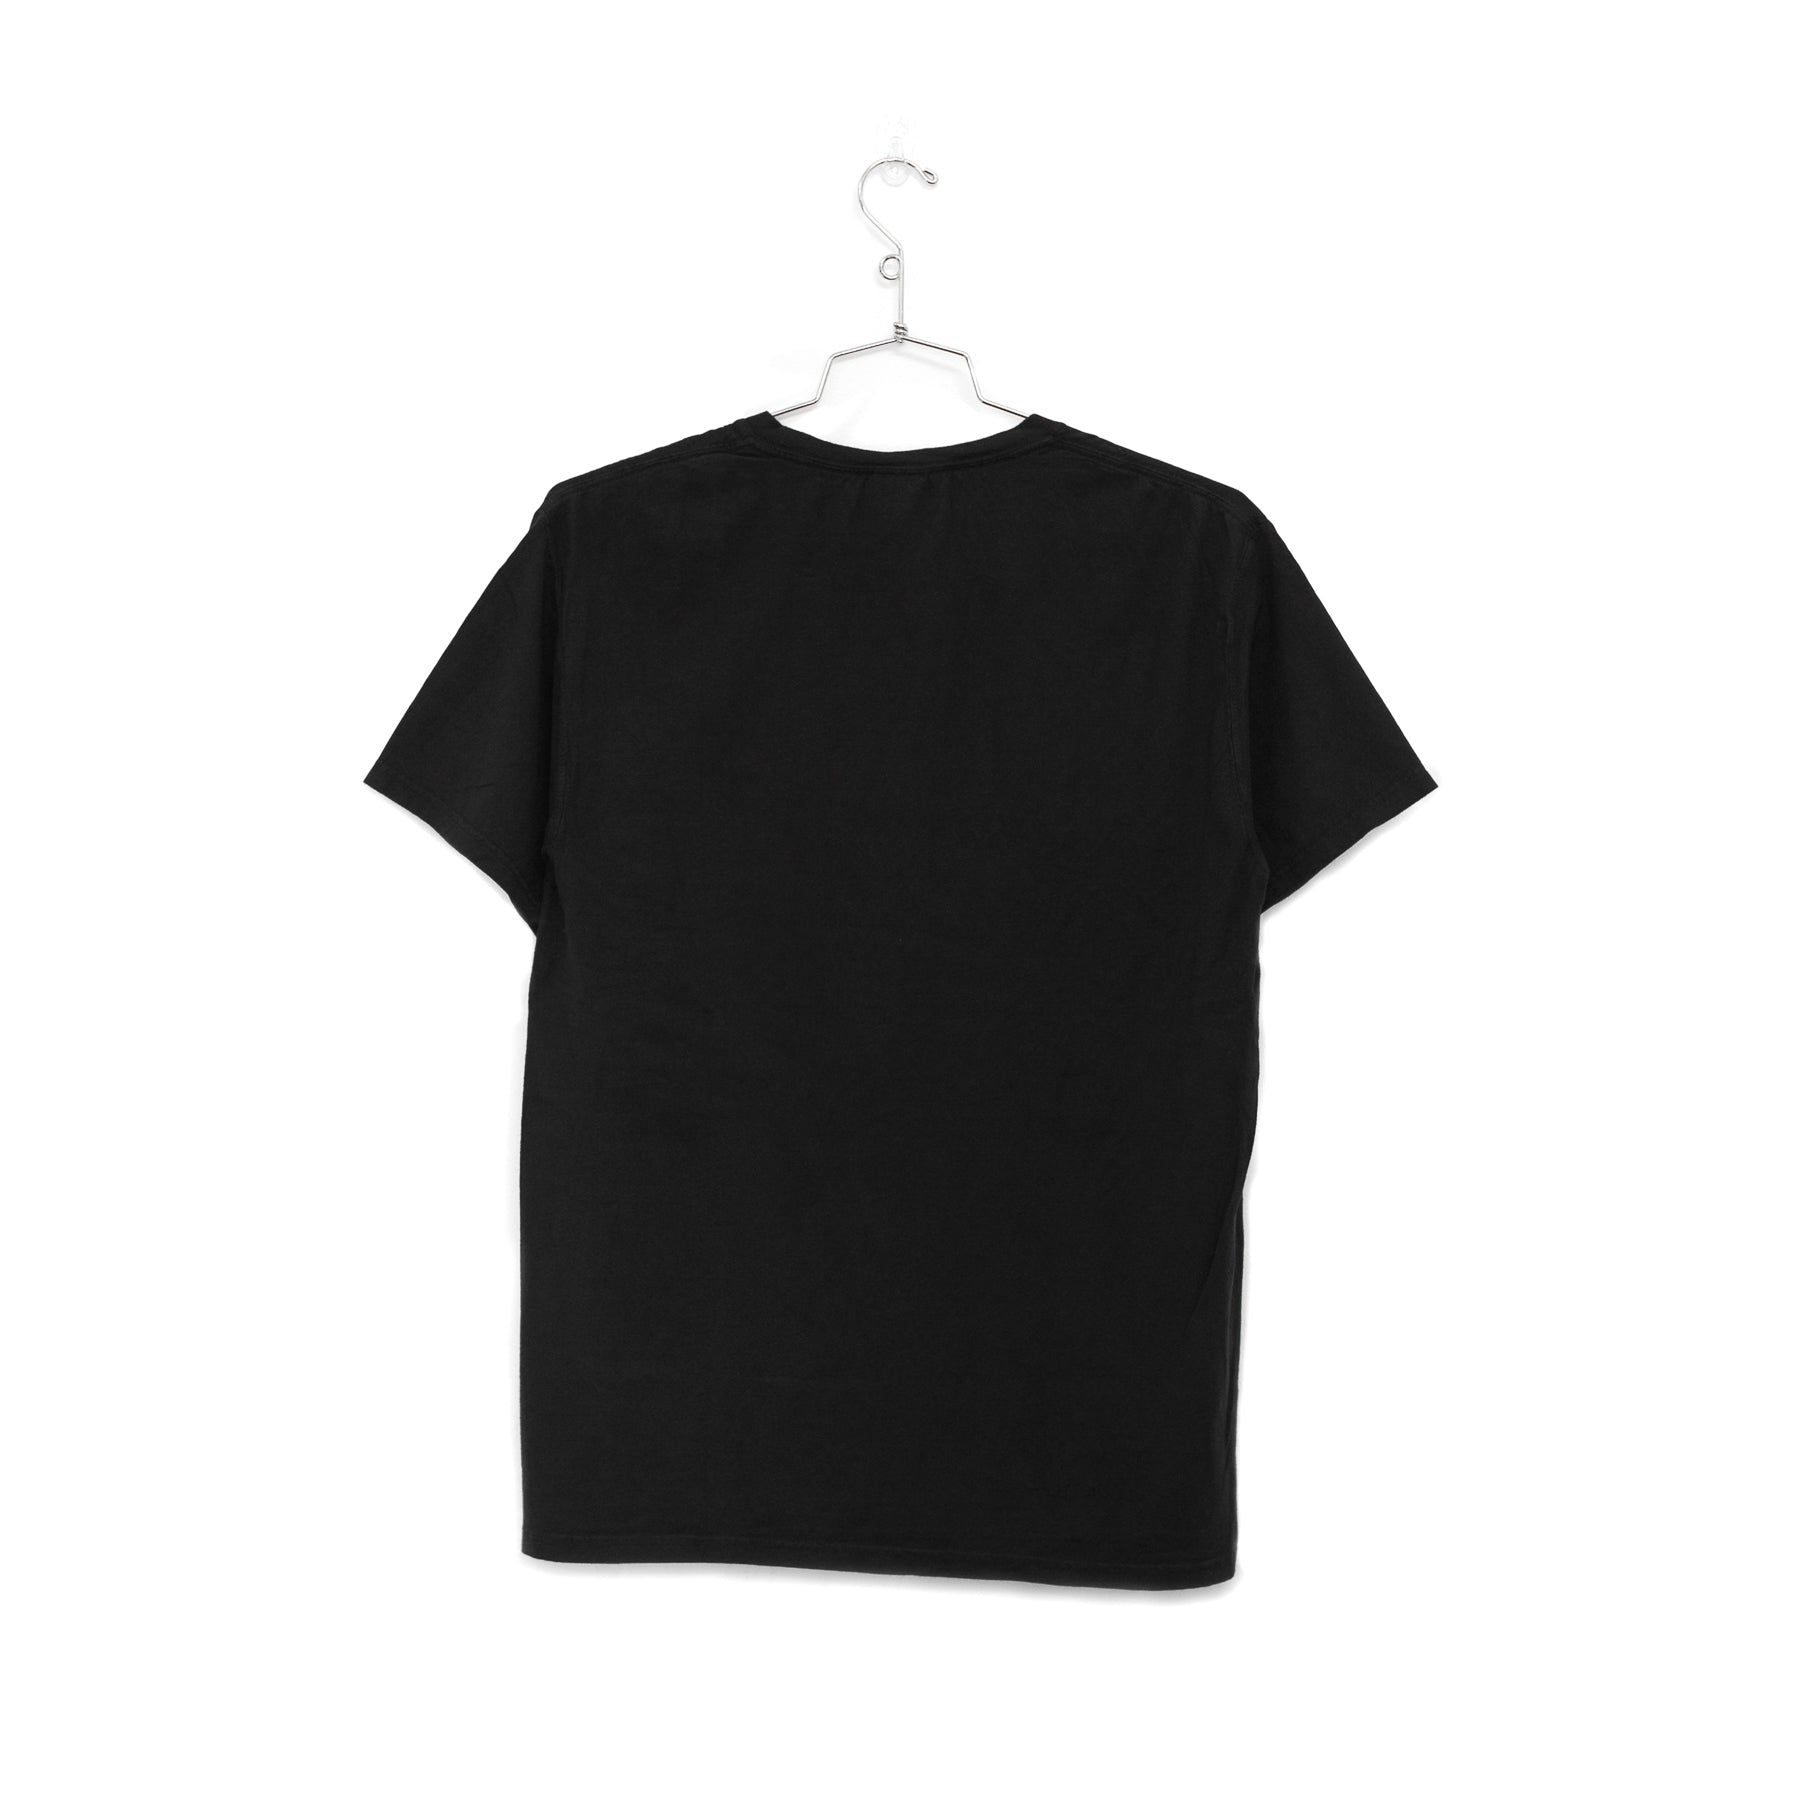 SPREAD LOVE ESSENTIAL T-SHIRT - BLACK